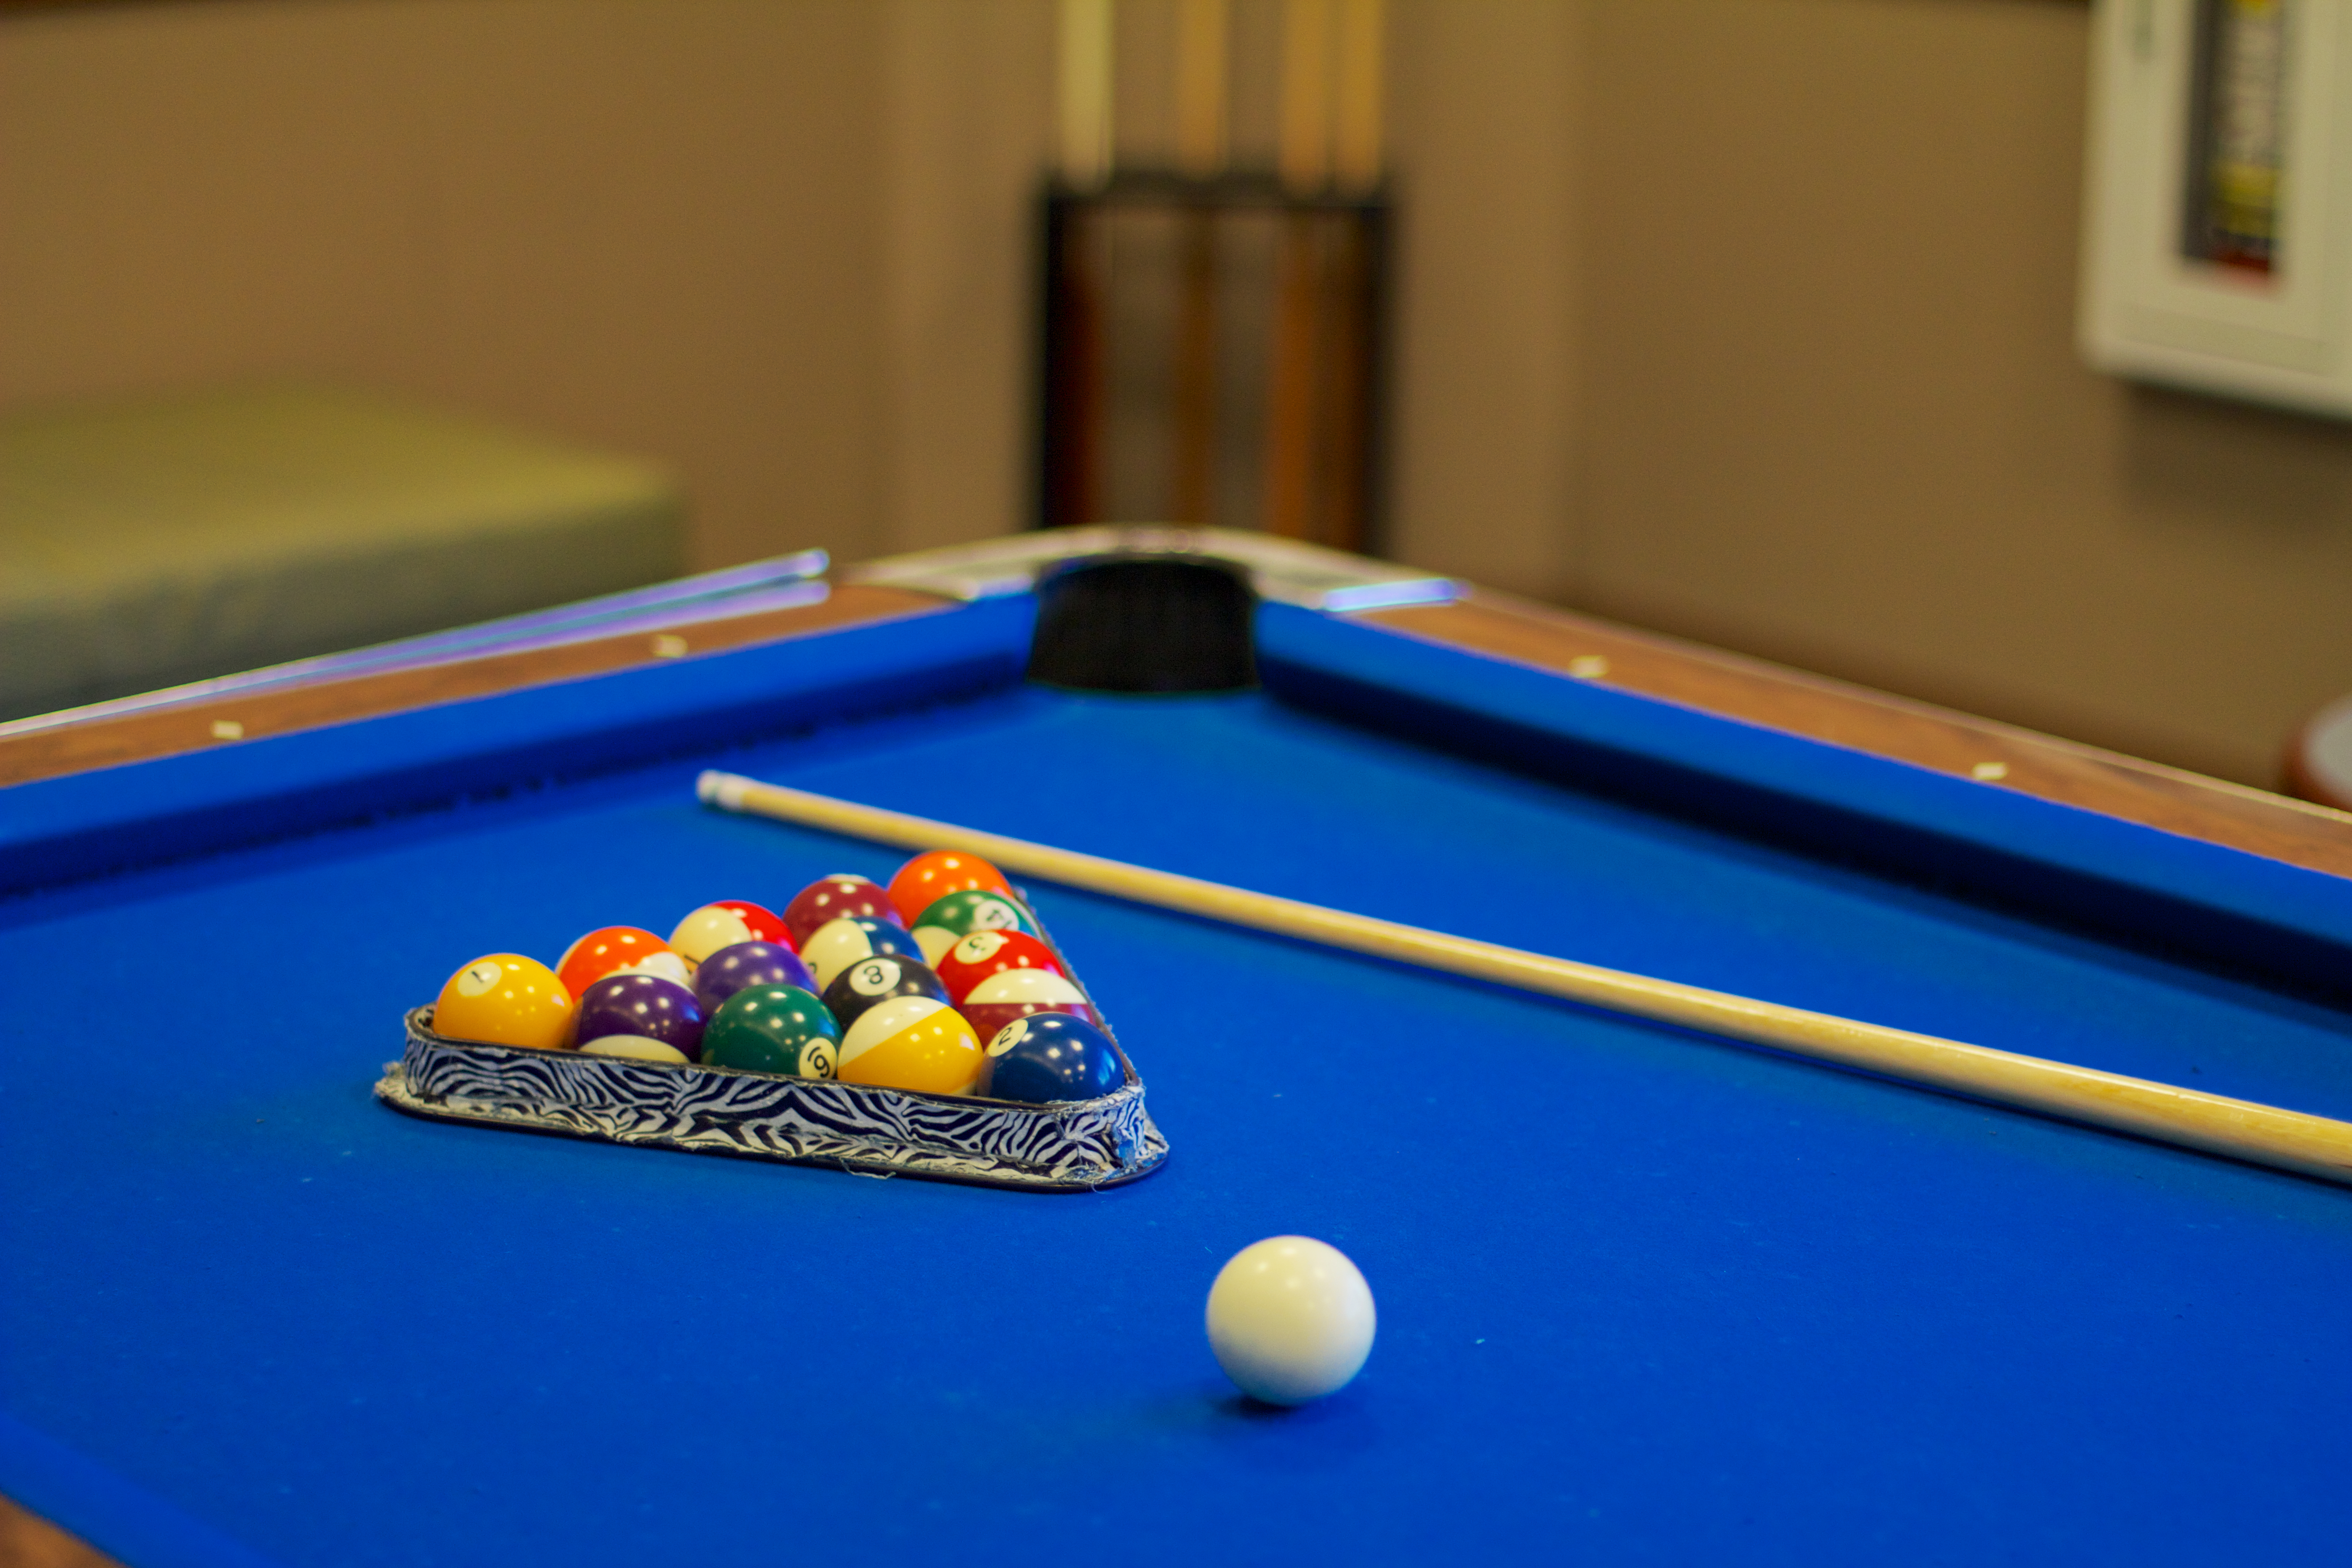 What Is the Proper Way to Set Up Pool Balls